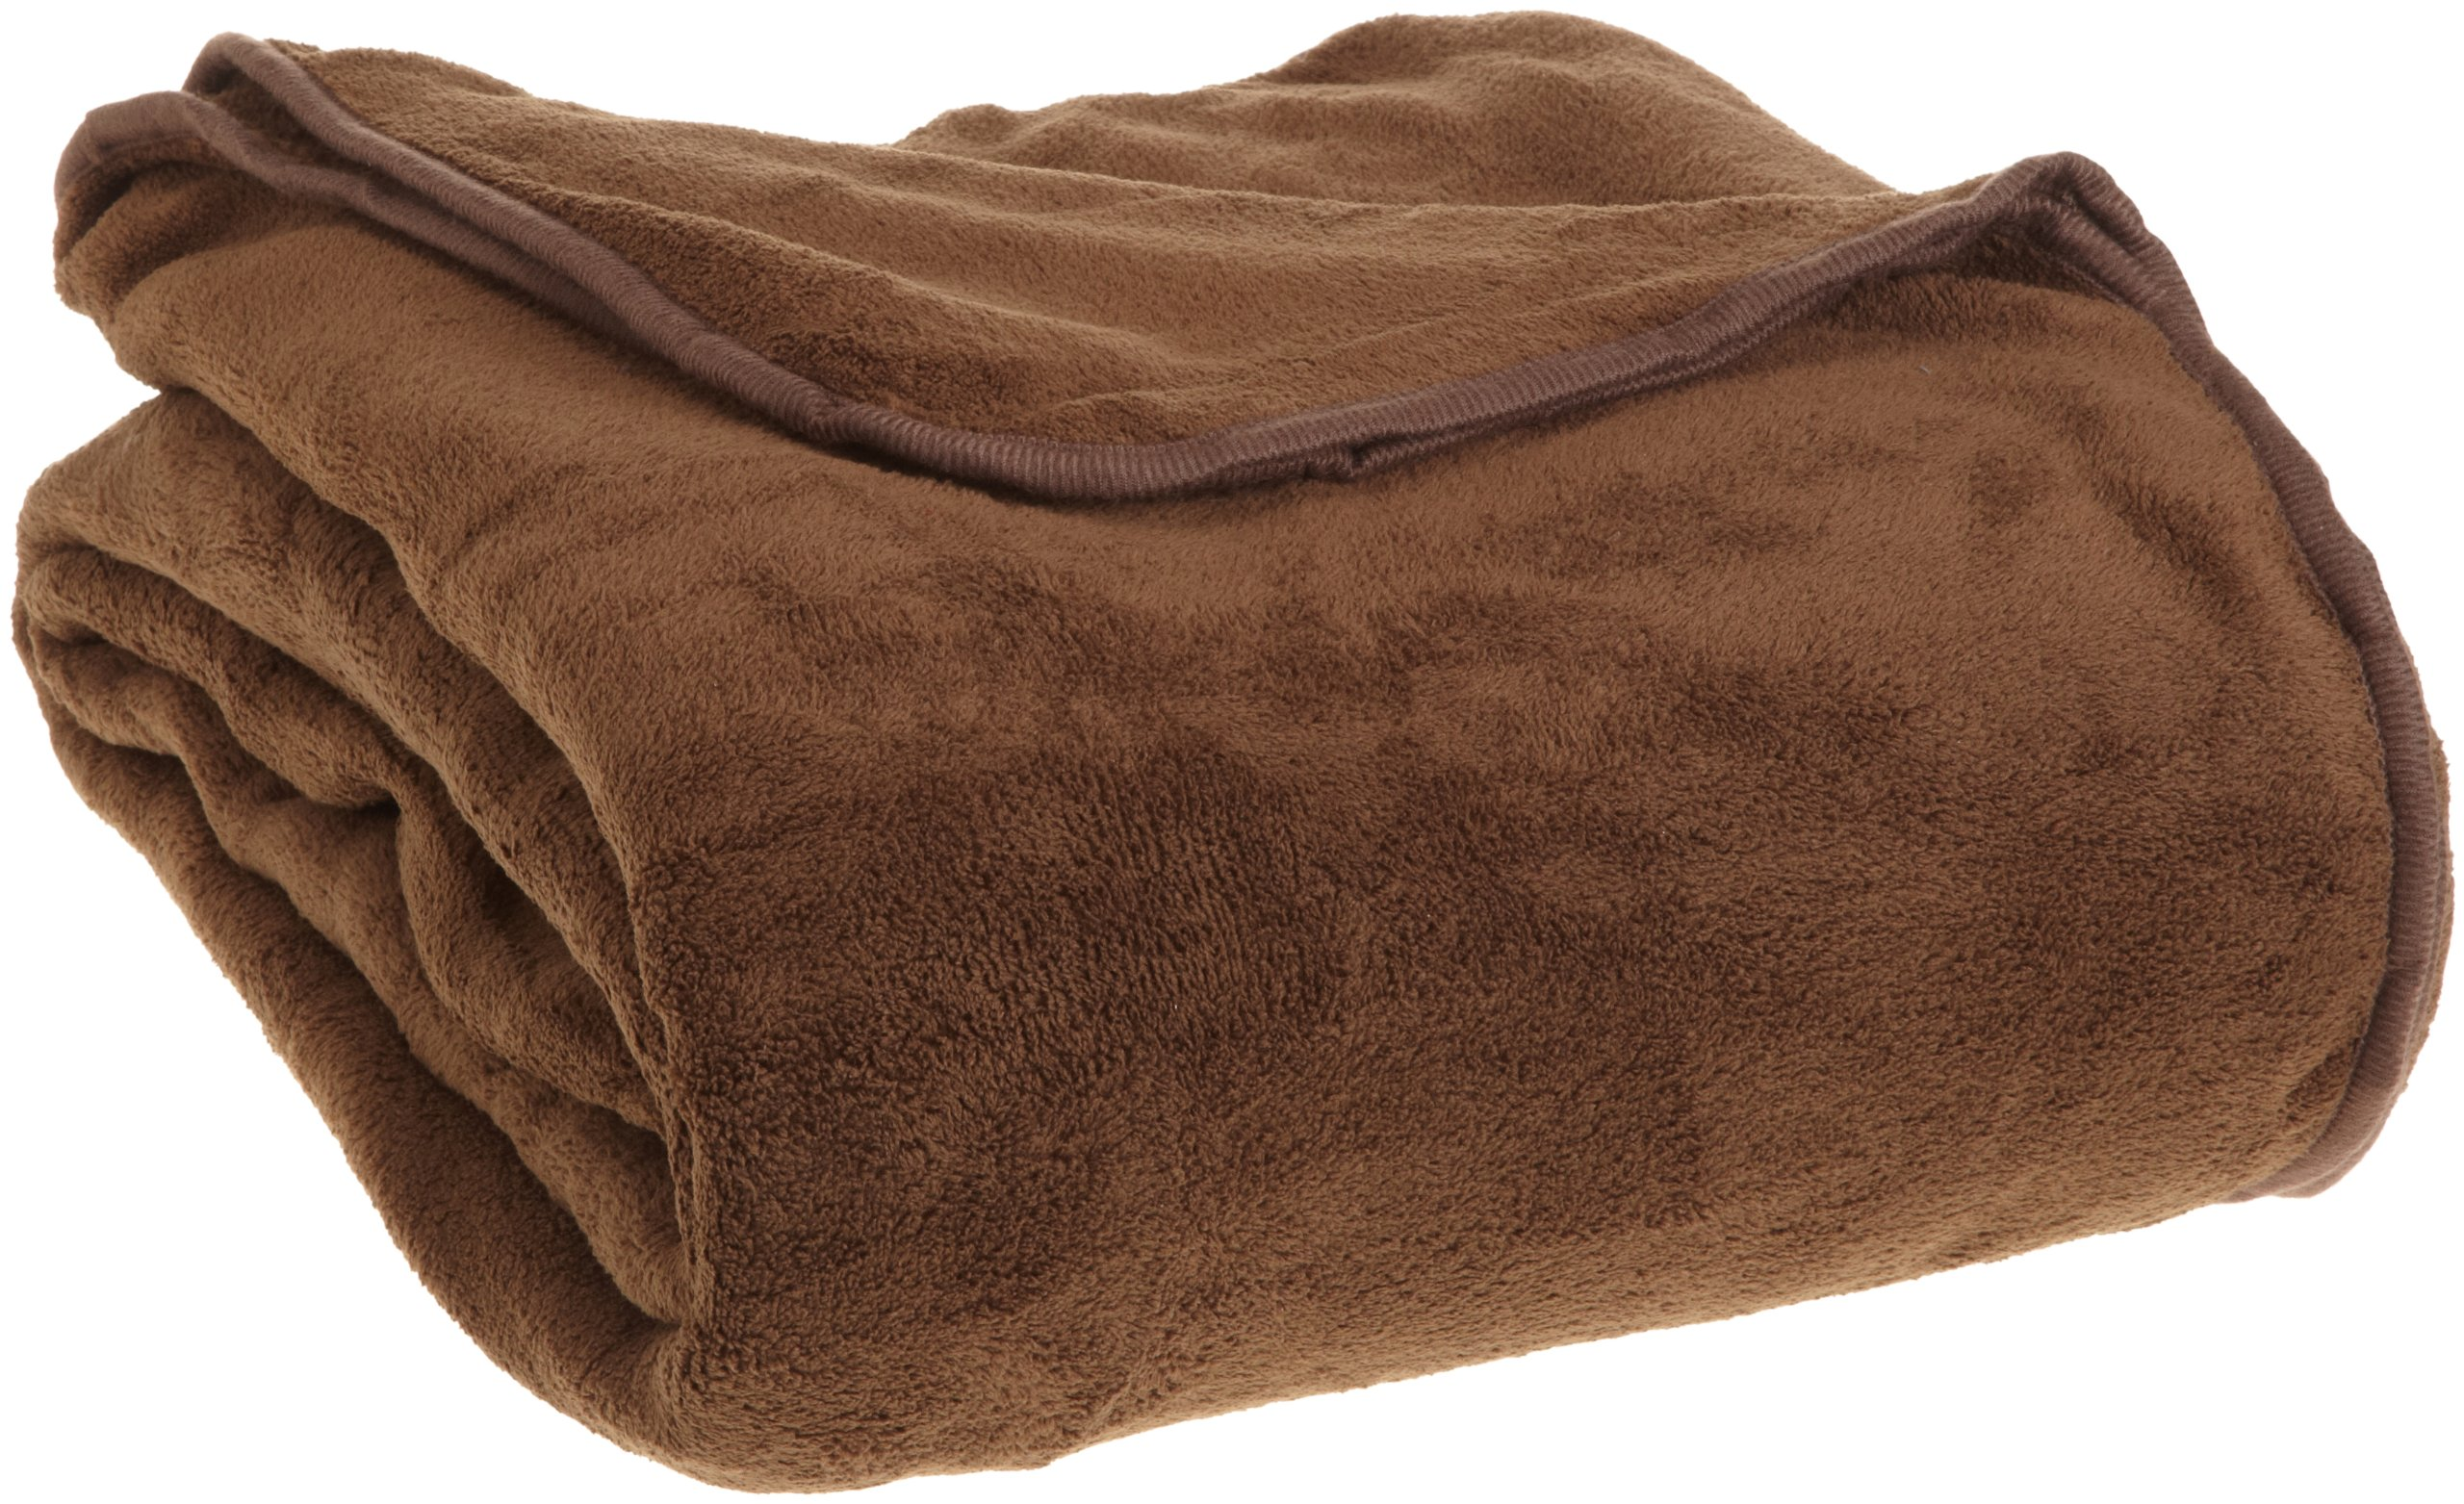 Elite Home All Seasons Collection Micro Fleece Plush Solid F/Q Blanket, Chocolate - Item includes 1 full/queen blanket 100-Percent coral fleece Knit hem edging - blankets-throws, bedroom-sheets-comforters, bedroom - 91wiawovI3L -